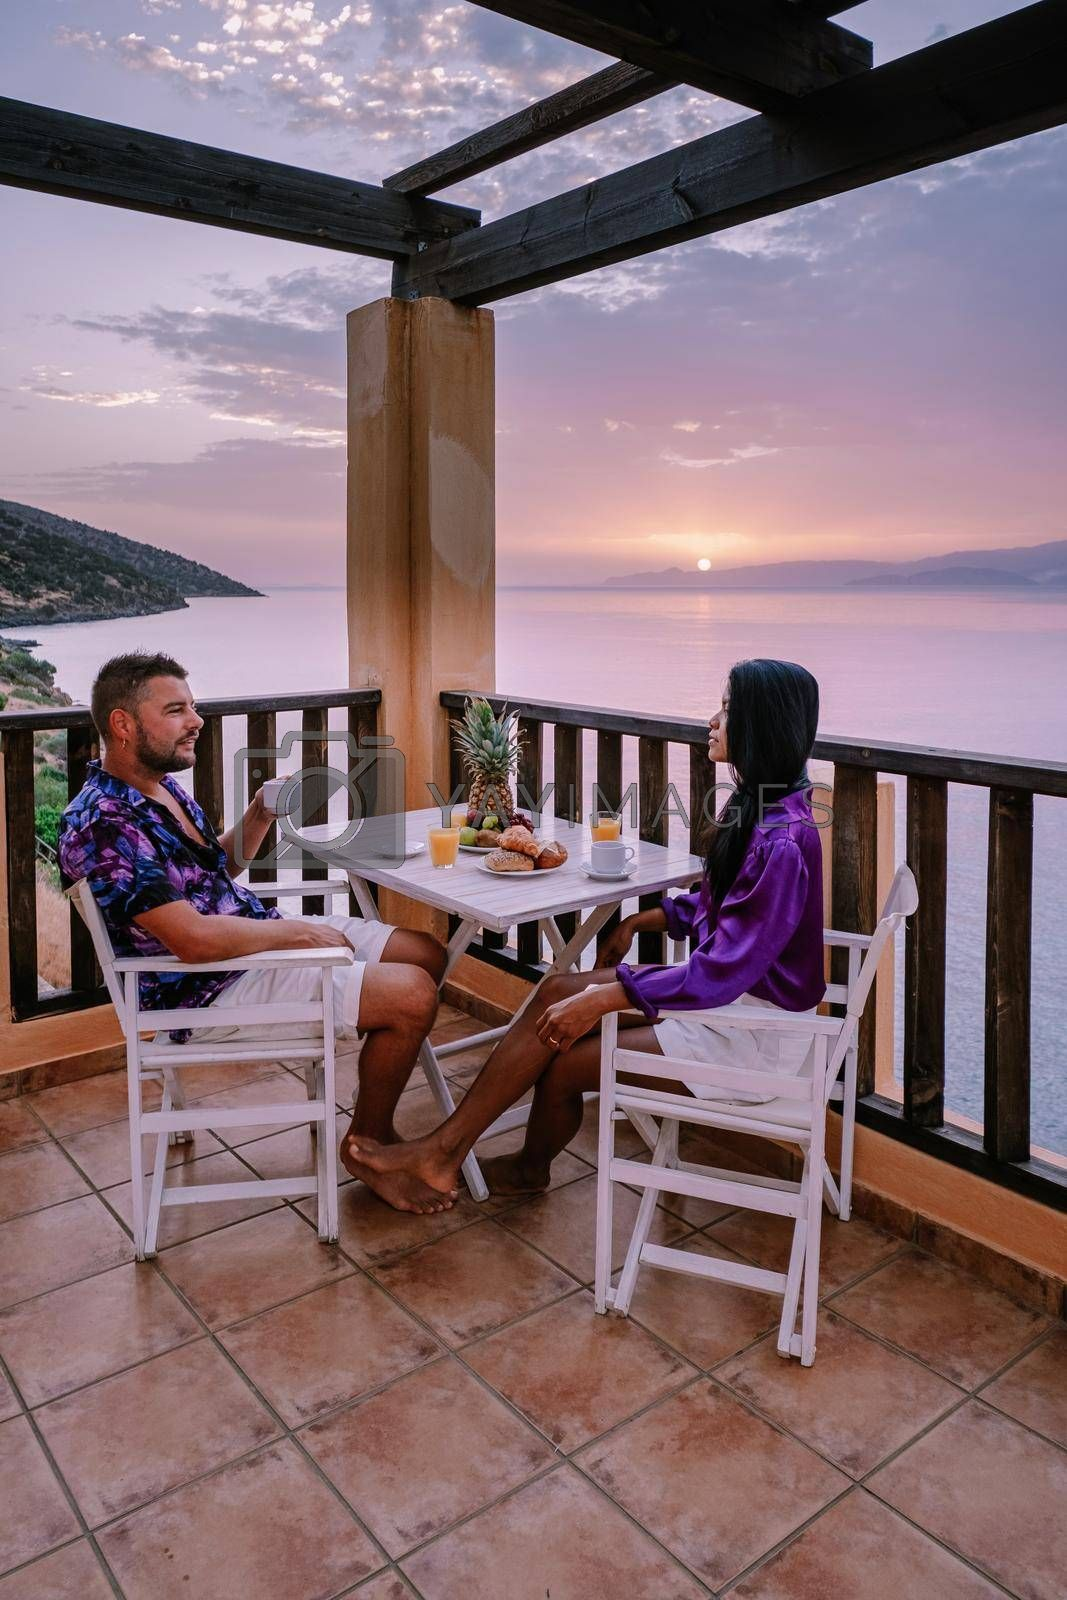 Royalty free image of table and chairs with breakfast during sunrise at the meditarian sea in Greece by fokkebok